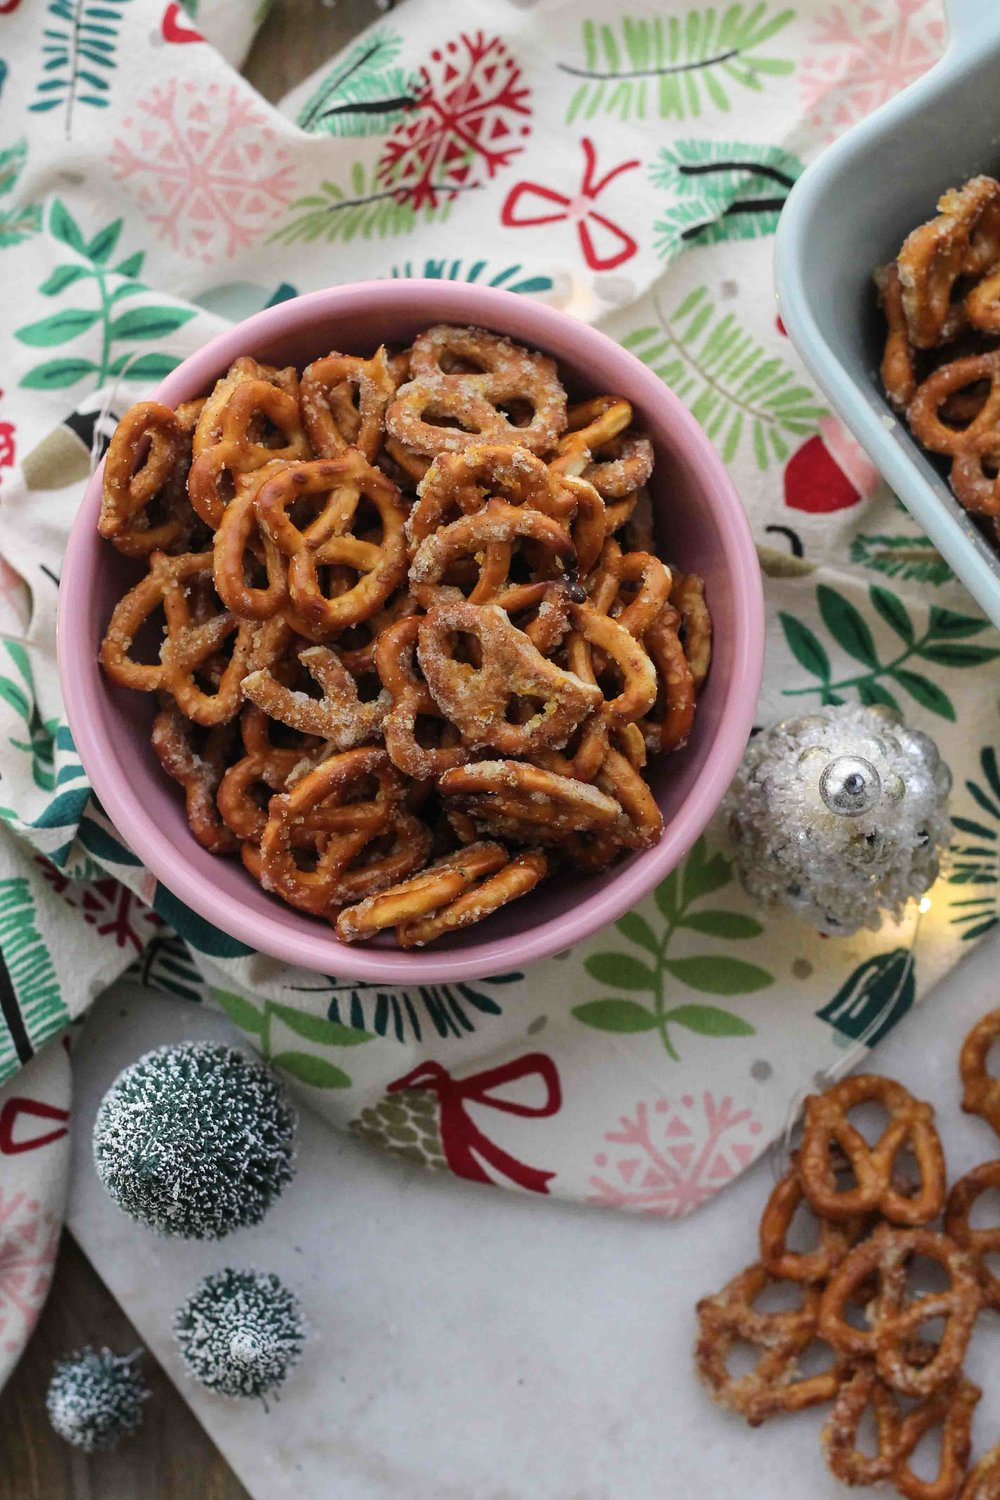 These easy, sugar and spice pretzels become addictive thanks to a heavy dose of nutmeg, vanilla bean, and orange zest - the perfect treat for gifting or Christmas snacking! {Pedantic Foodie}